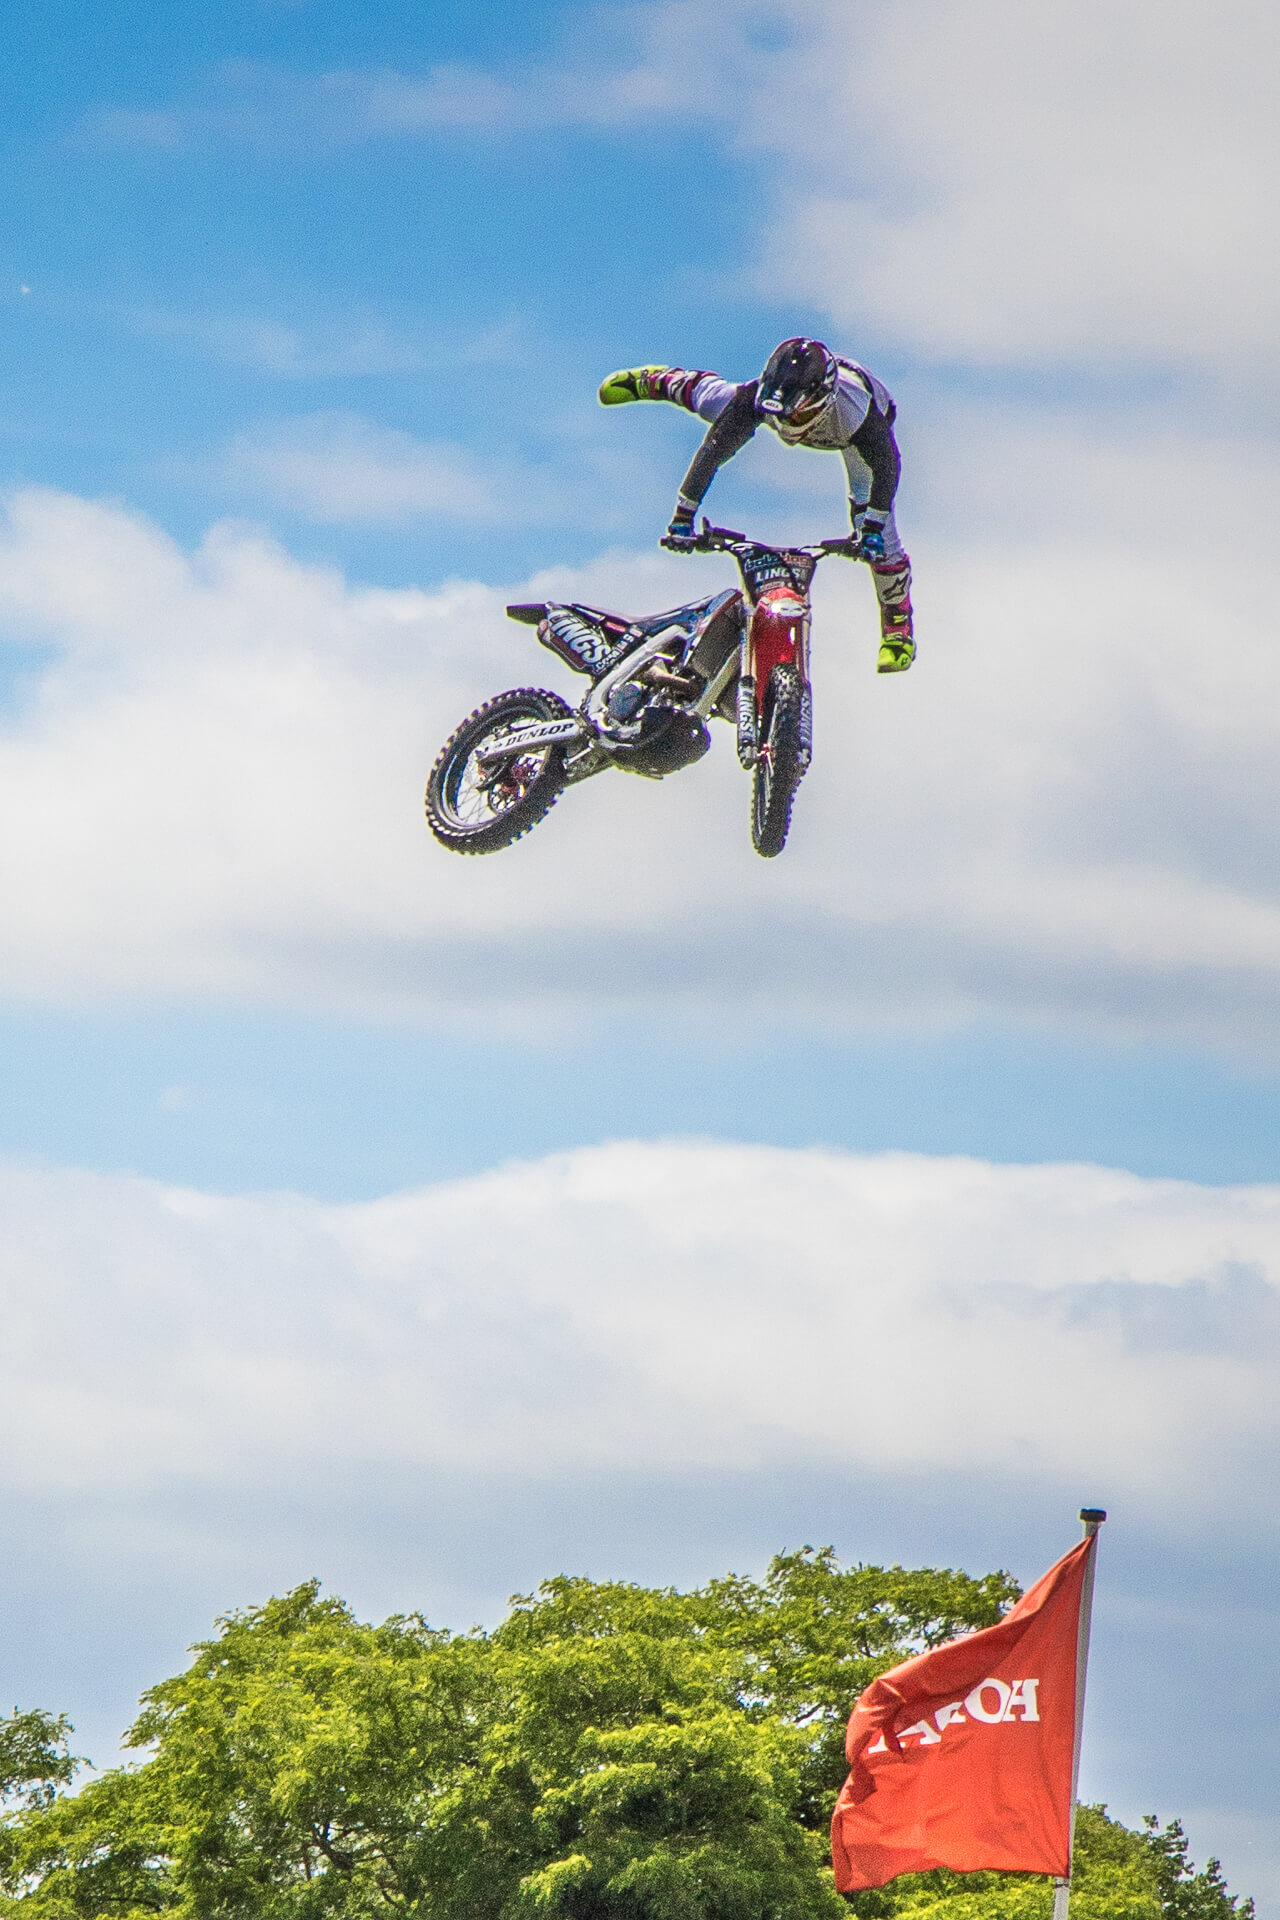 A motorbike stunt bike rider seen here, in full protective clothing and against a 'Simpson's Sky' background, getting some 'airtime' during a display at Bike For Life in 2018. He is seen here with only his hands on the handlebars, the rest of his body is off of the bike, his legs are above his head.